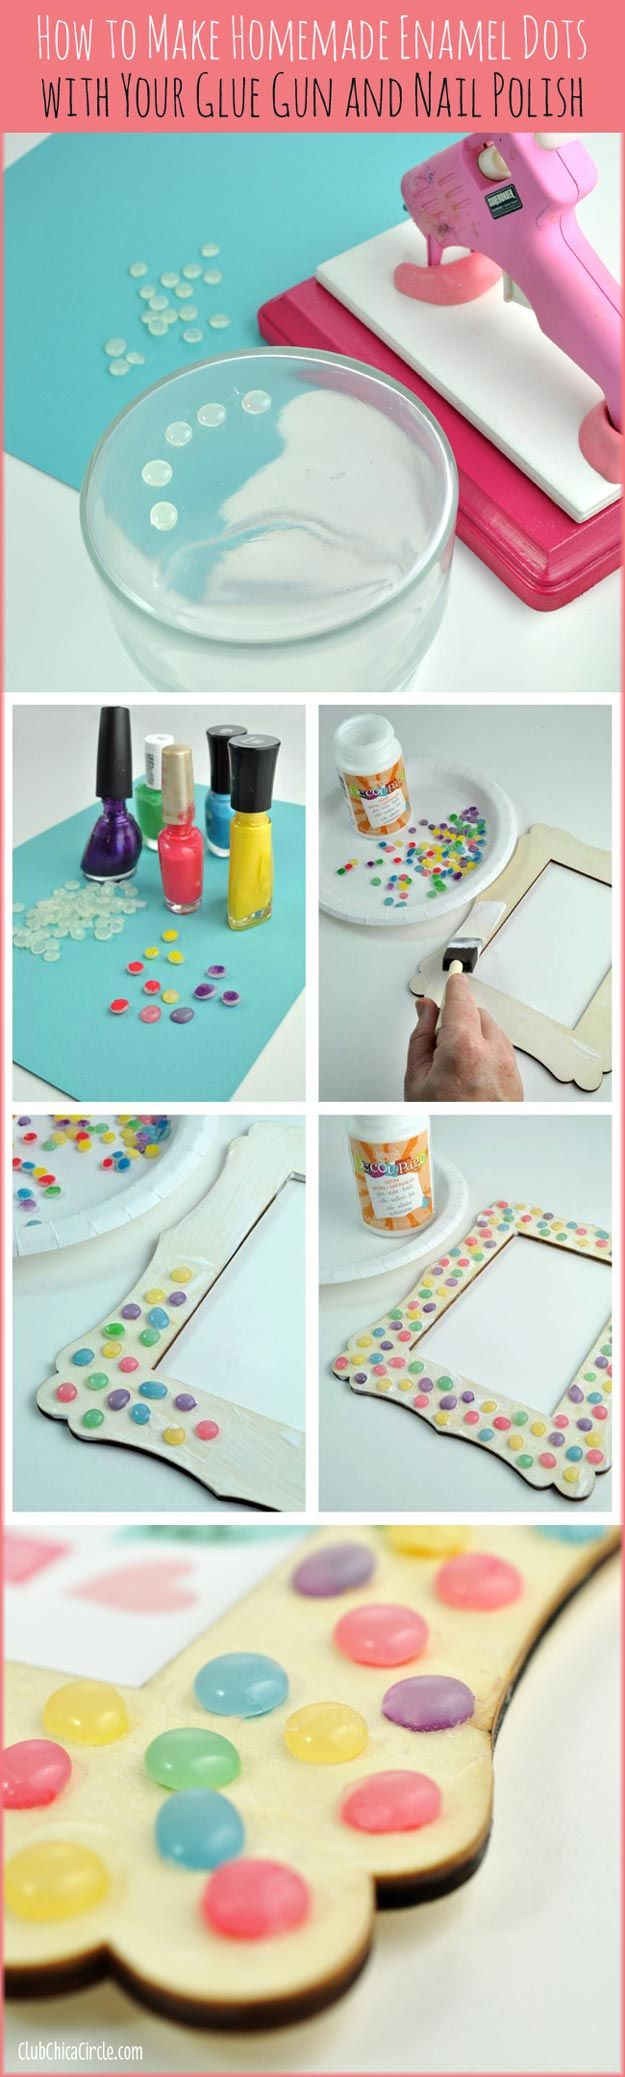 31 incredibly cool diy crafts using nail polish glue for Diy projects for tweens